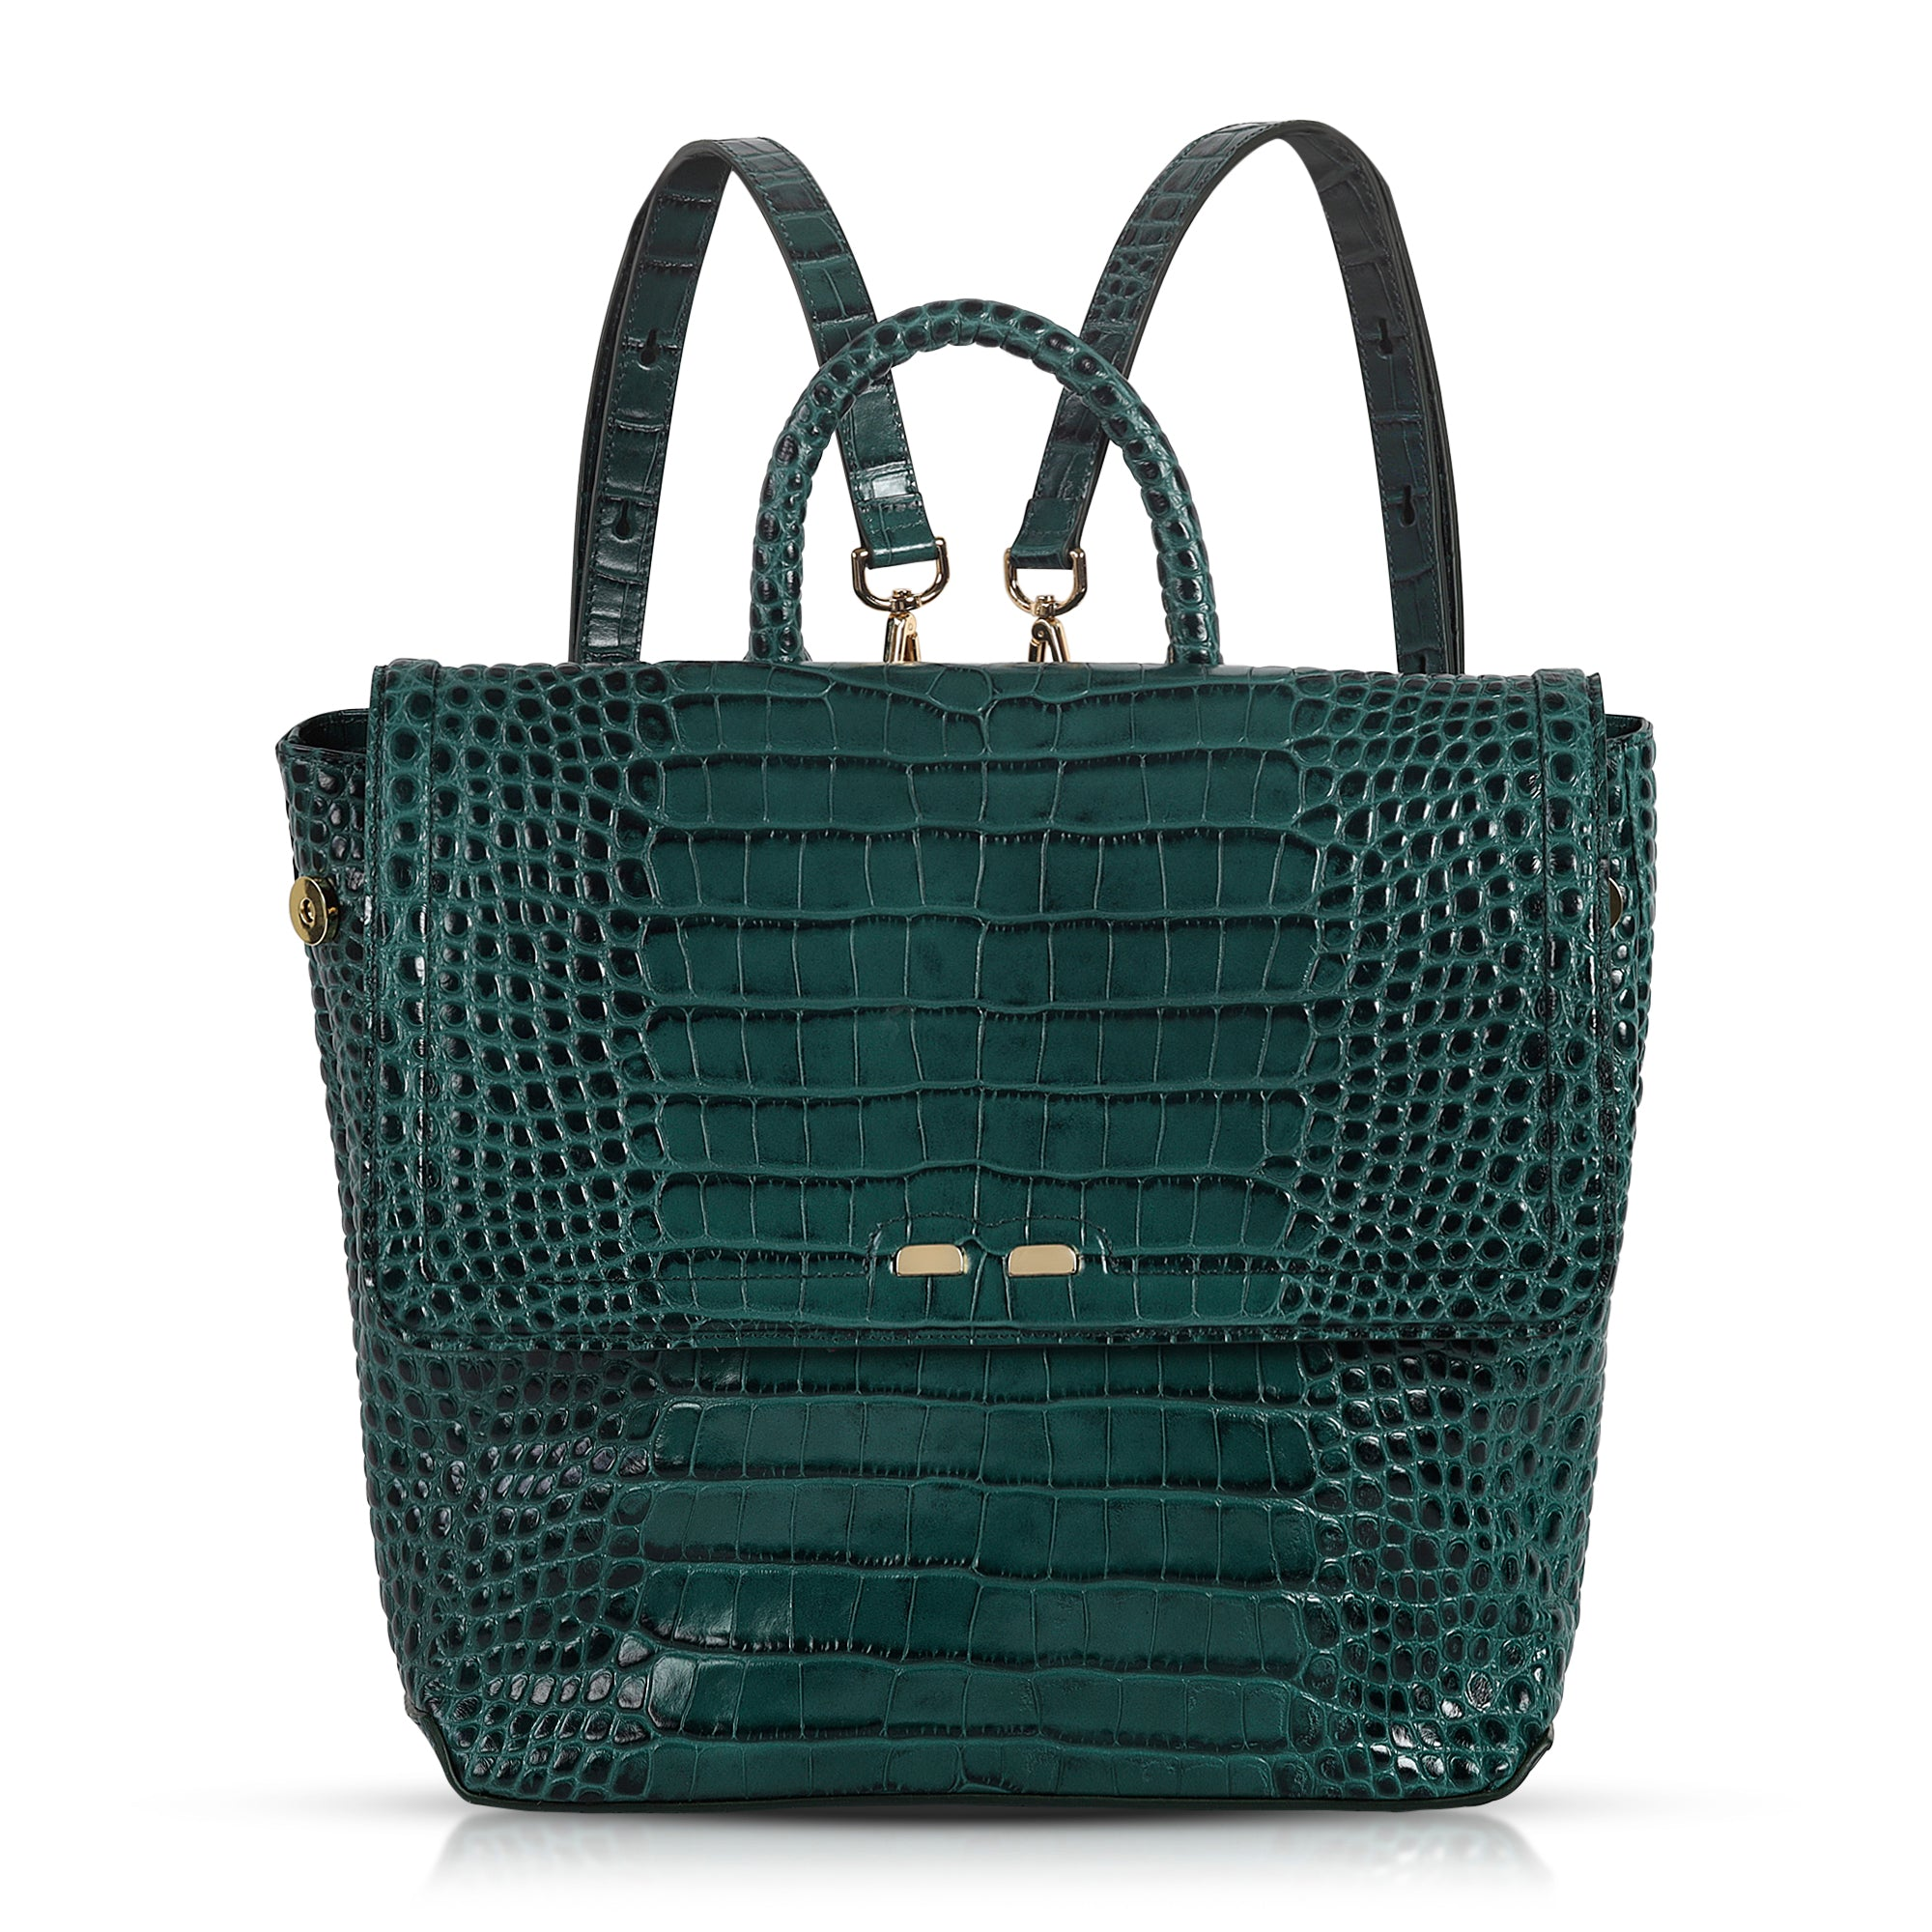 Blakemore in Emerald Croc